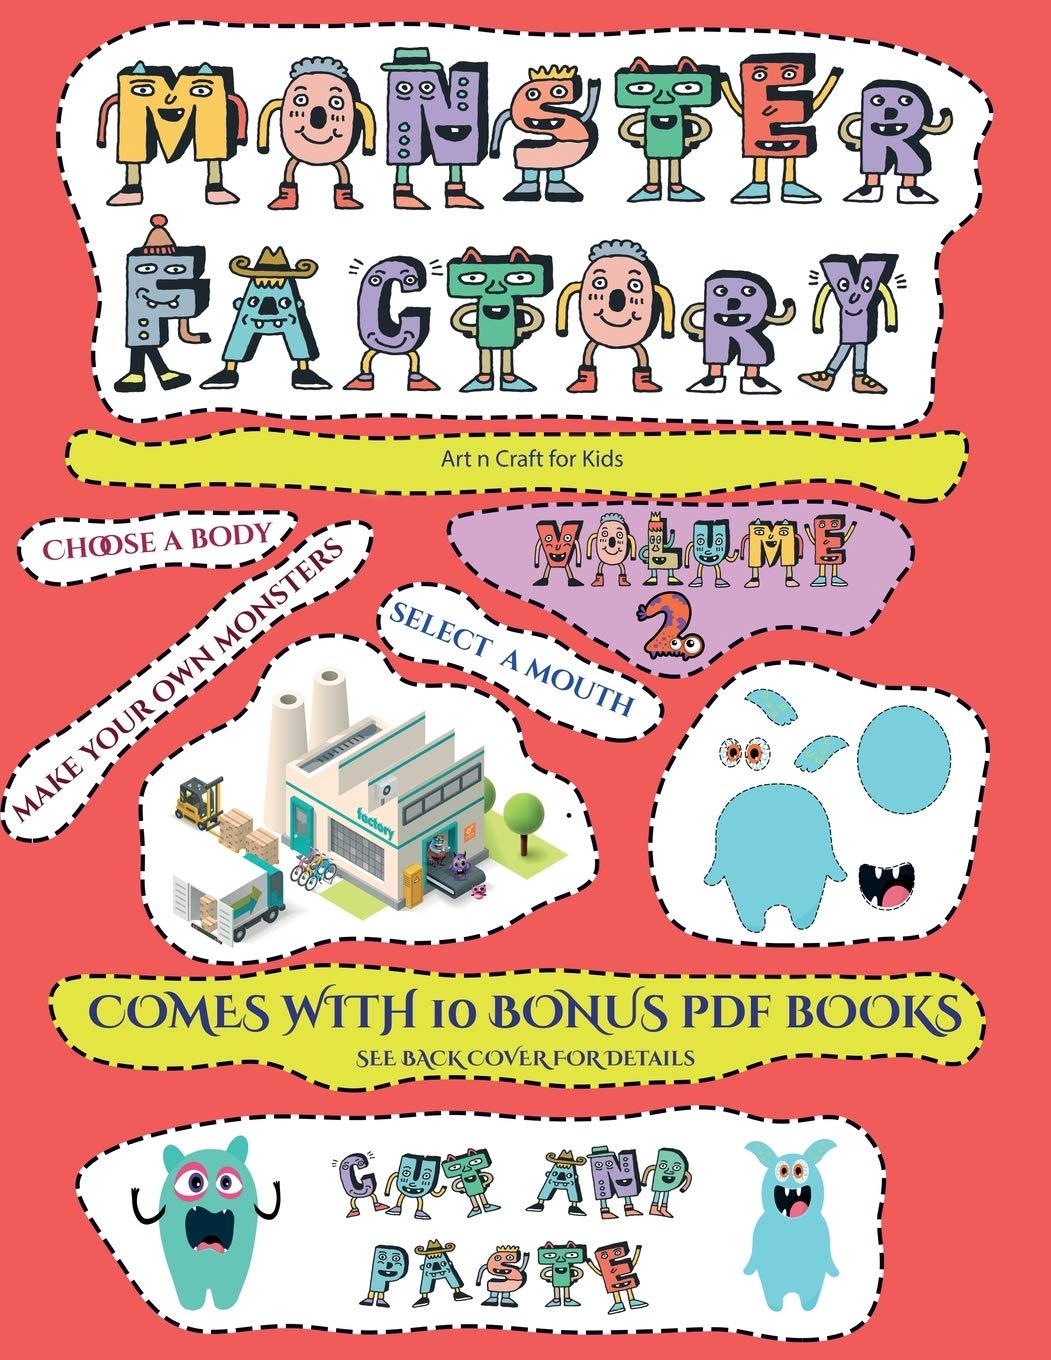 Buy Art N Craft For Kids Cut And Paste Monster Factory Volume 2 This Book Comes With A Collection Of Downloadable Pdf Books That Will Help Your Child Control Develop